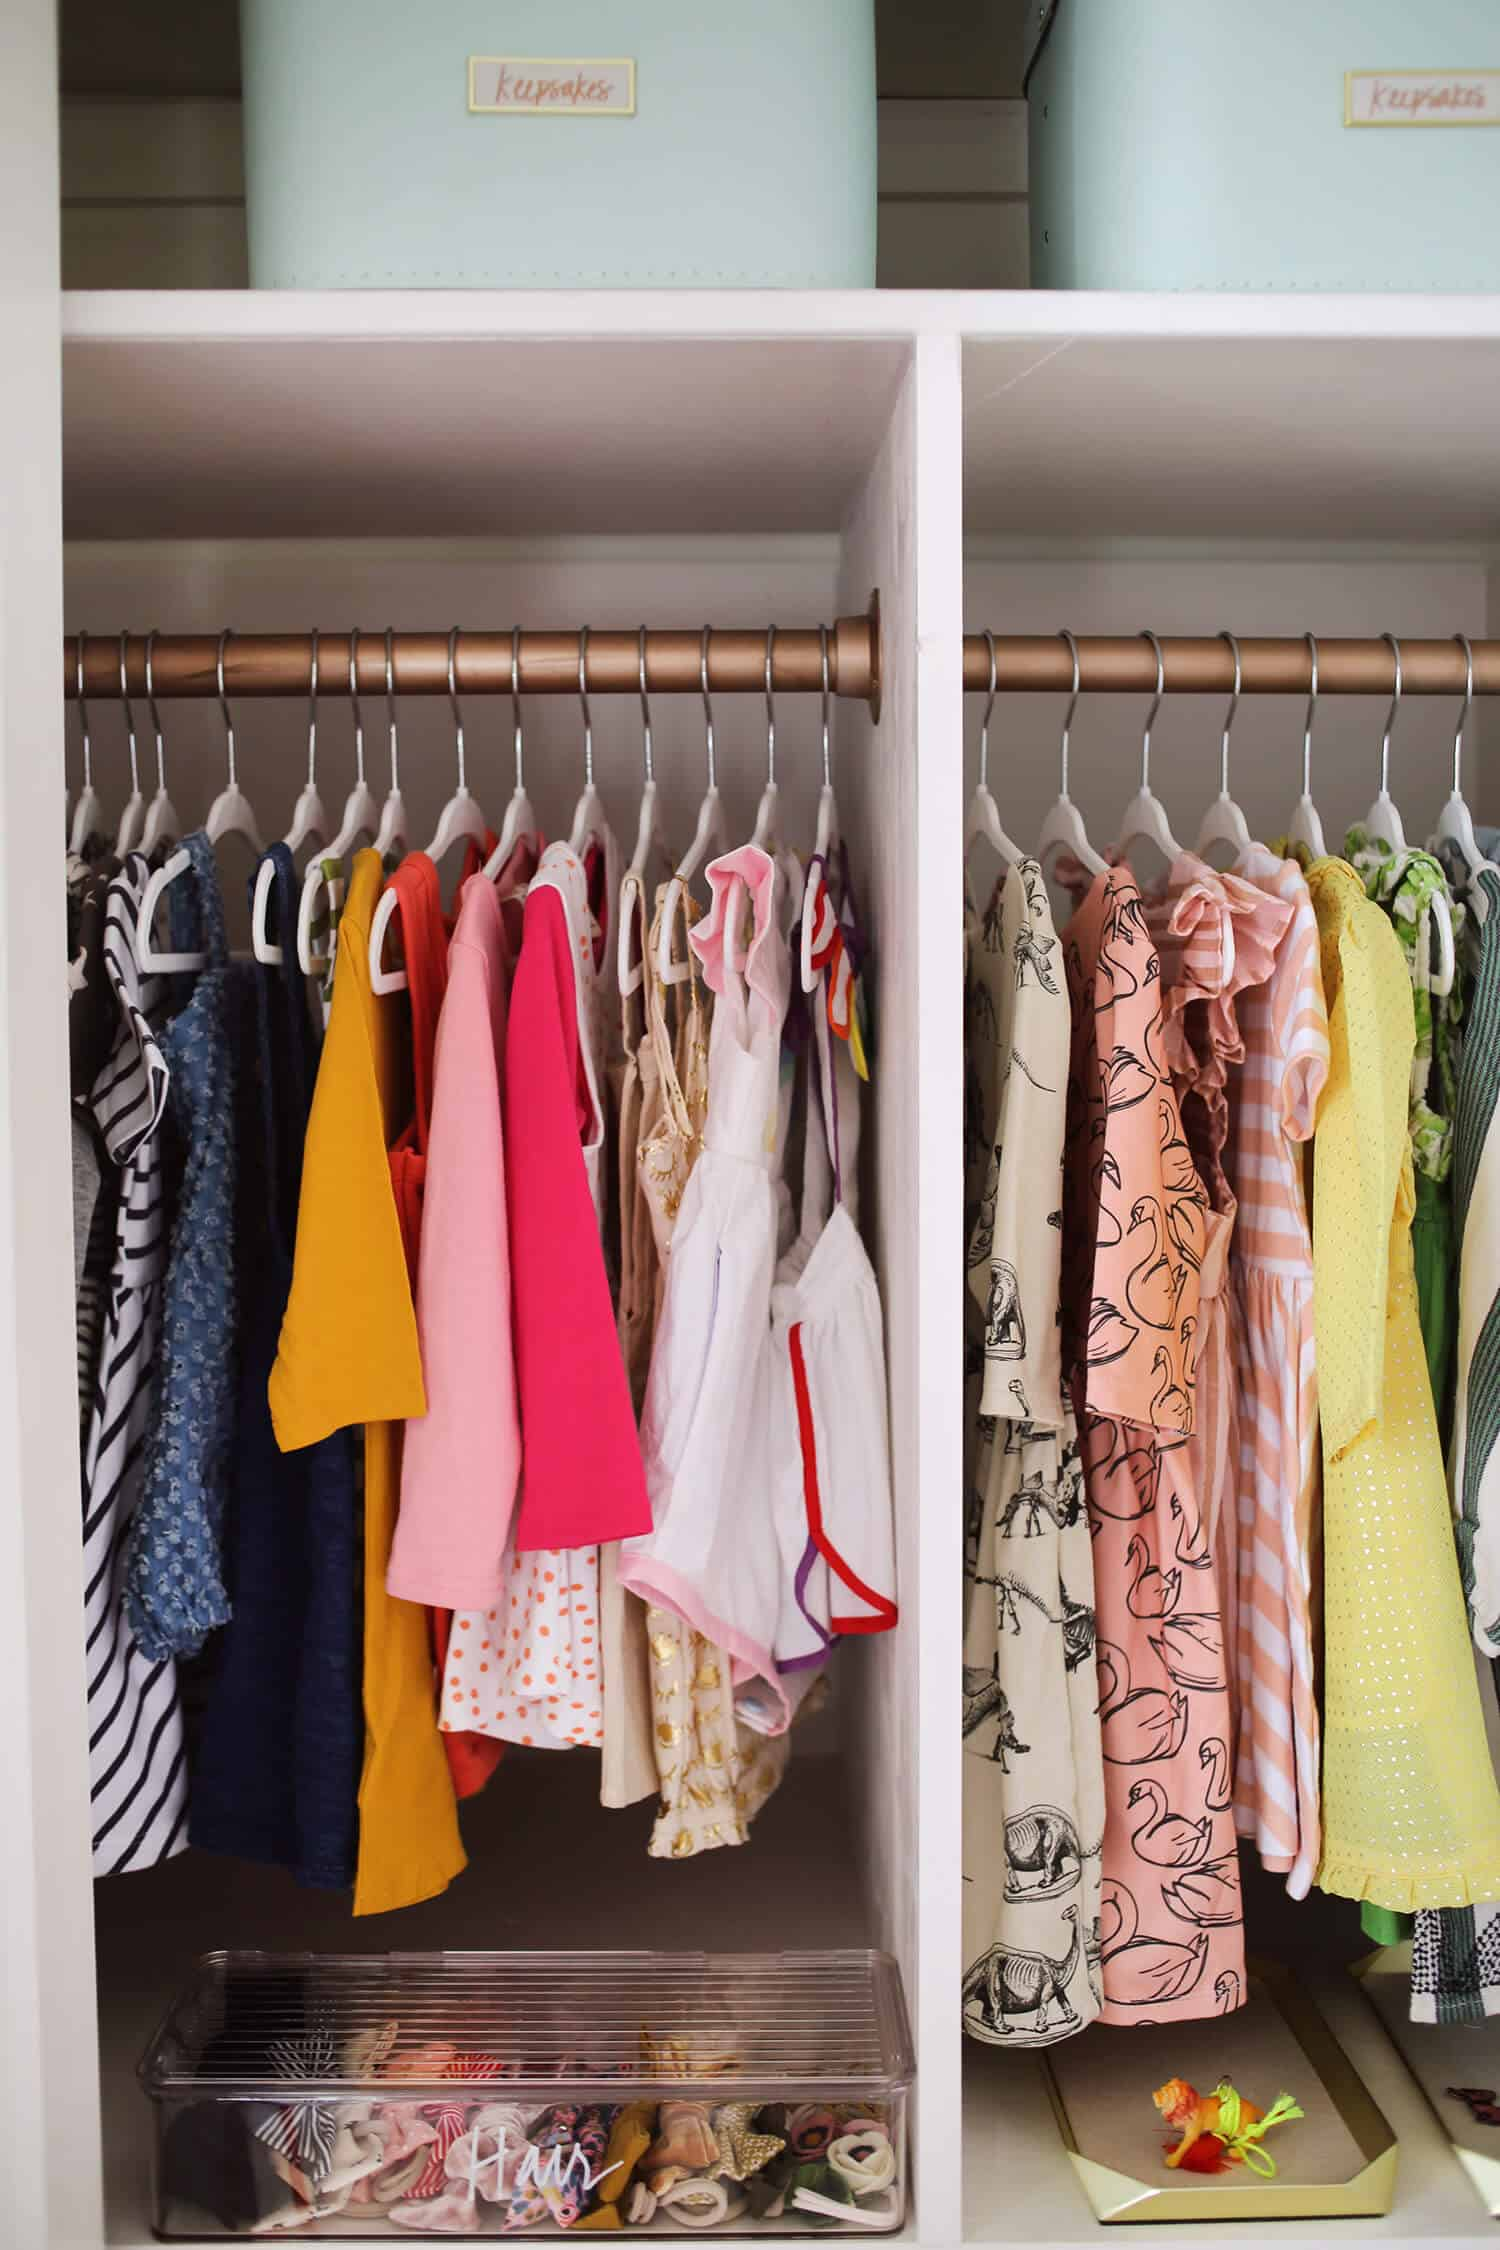 Tip 3: Keep Two Storage Bins On Hand: One For Clothing They Donu0027t Fit Into  Yet, And One For Clothing That No Longer Fits. Having Bins For Items They  Arenu0027t ...